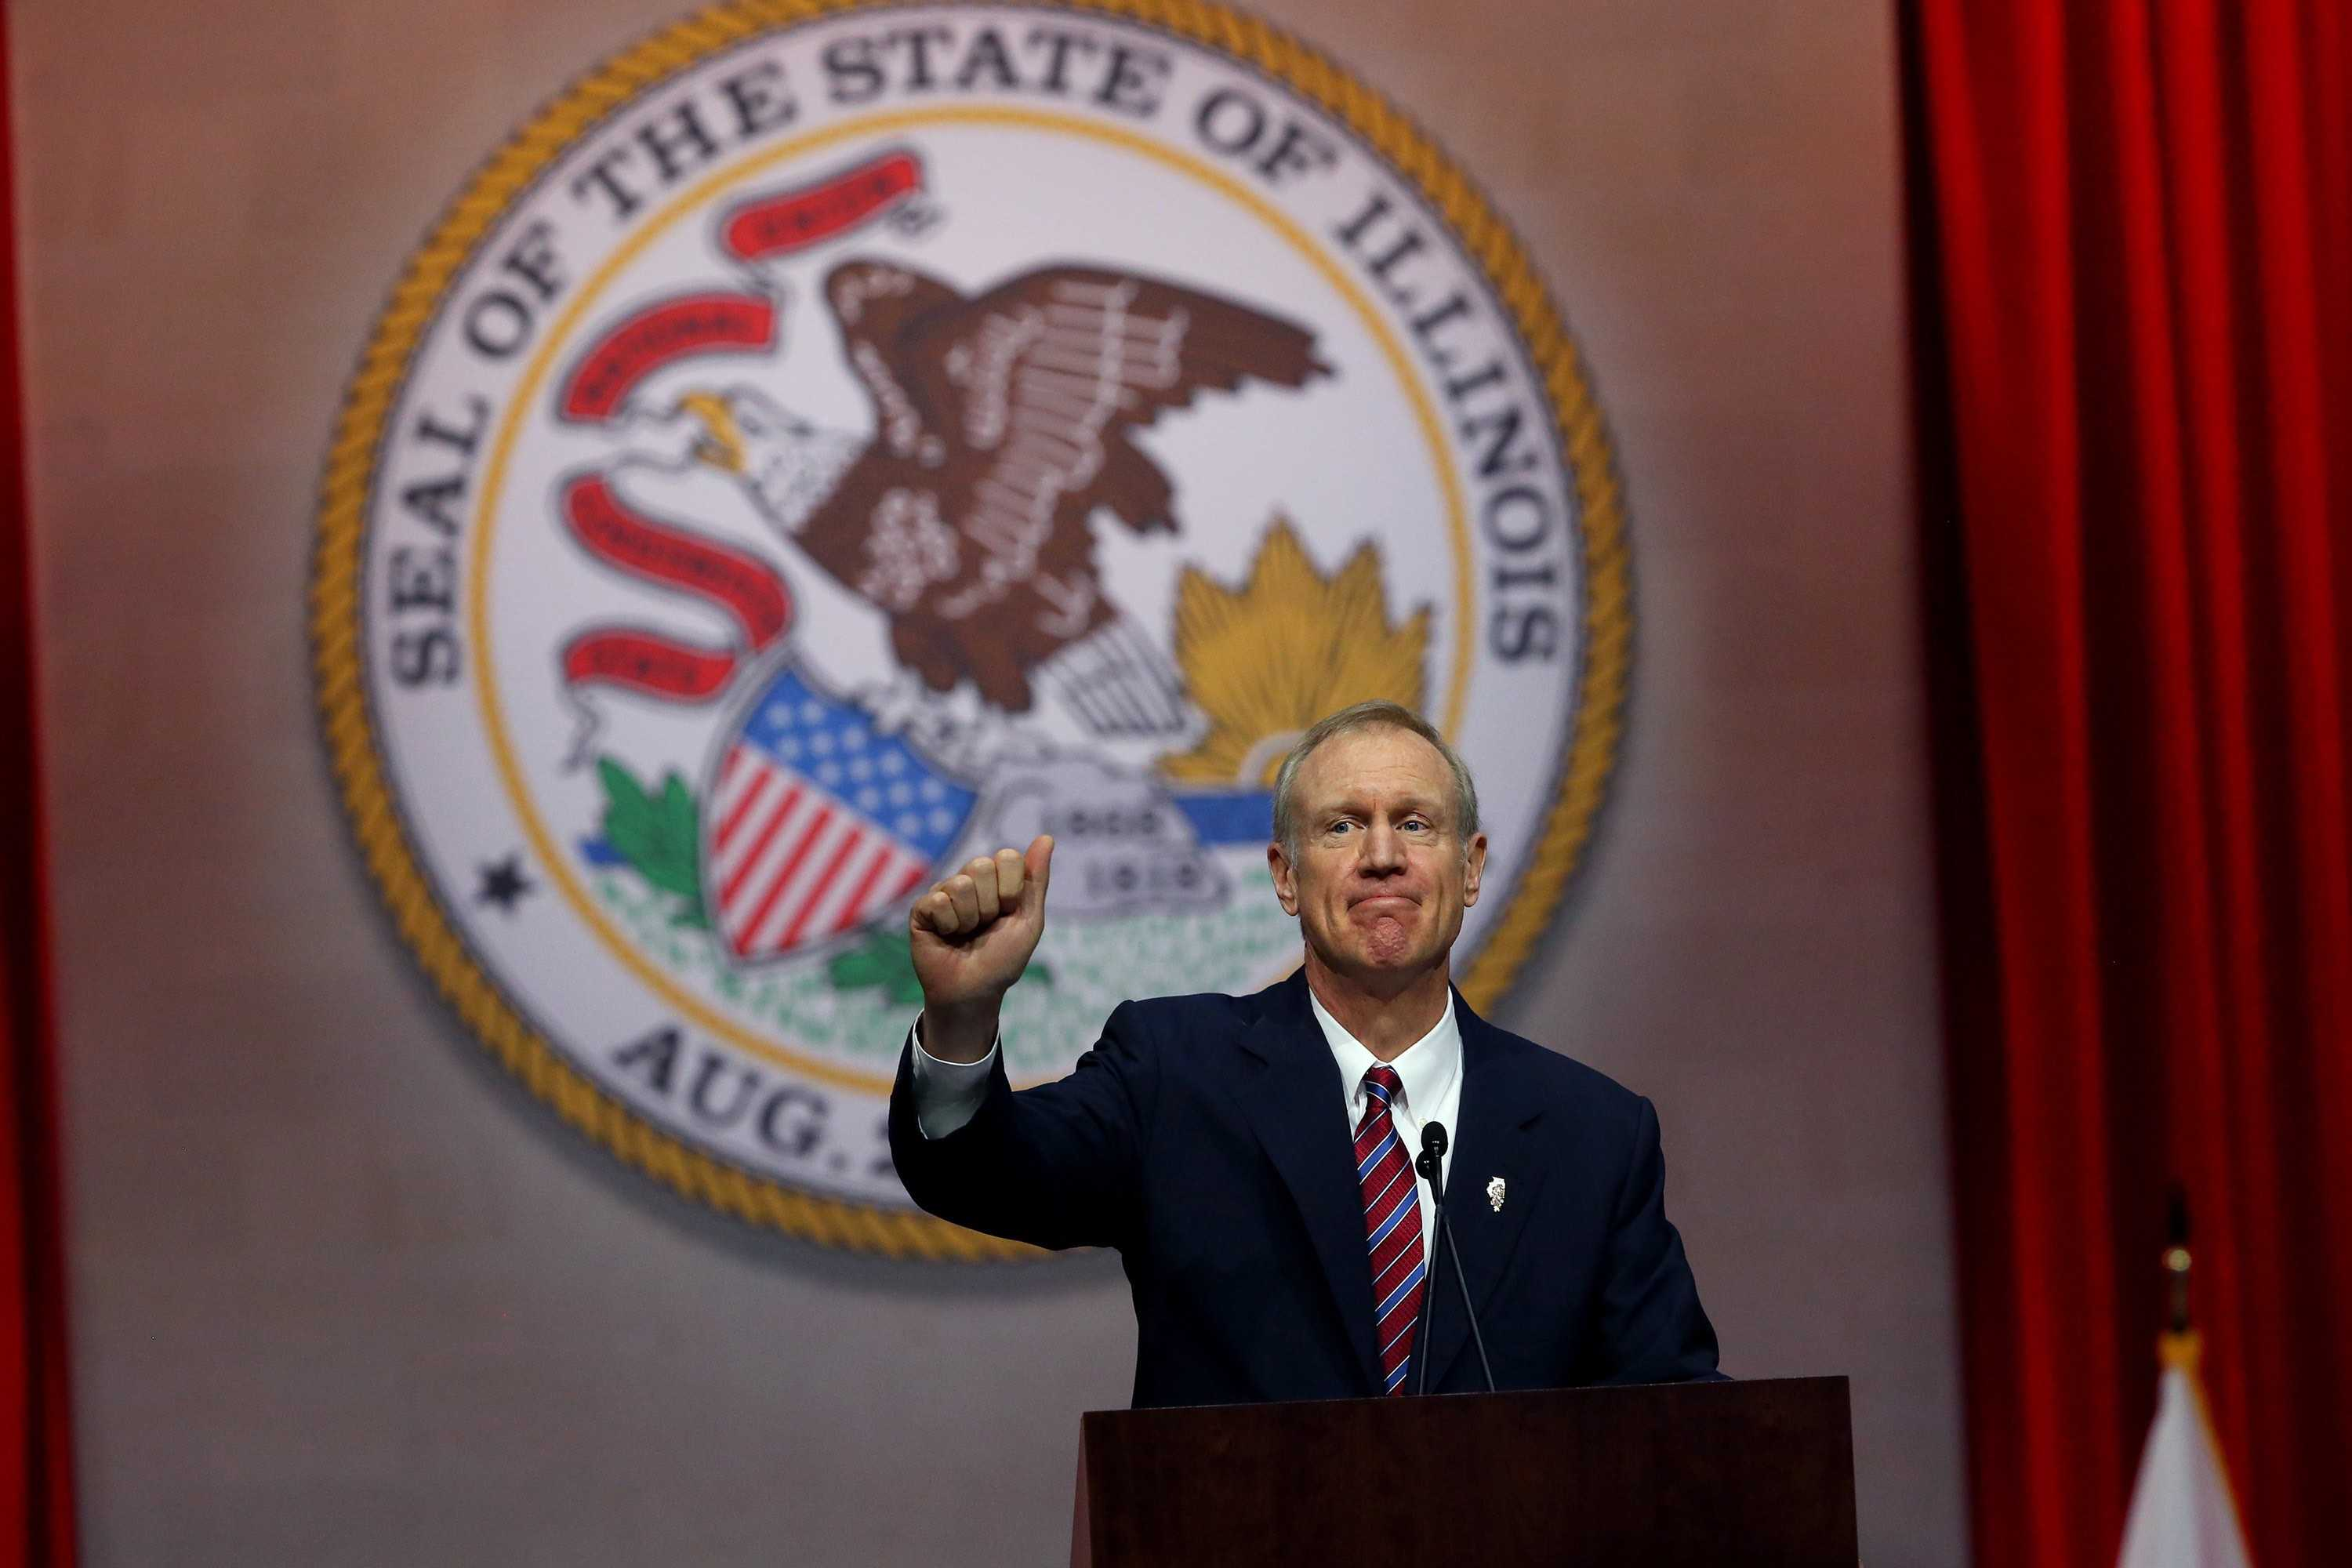 Gov. Bruce Rauner gives a thumbs up after giving his first speech as governor on Monday Jan. 12, 2015 at the Prairie Capital Convention Center in Springfield, Ill. (Nancy Stone | Chicago Tribune)